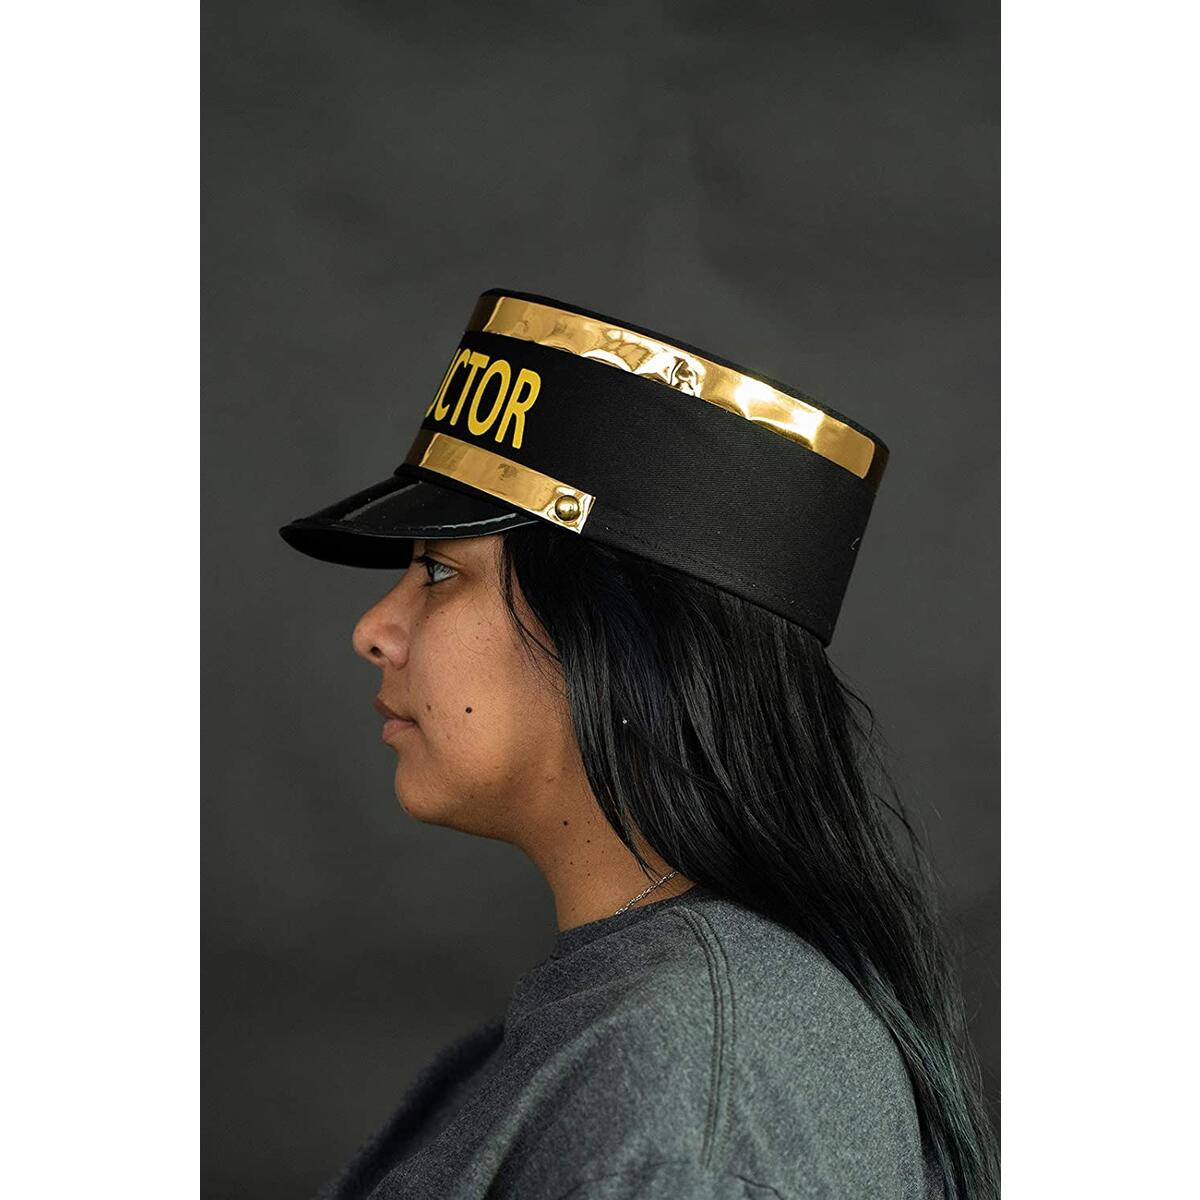 Adult Deluxe Train Conductor Hat - Locomotive Engineer Cap - Costume Accessory, Black Gold, One Size